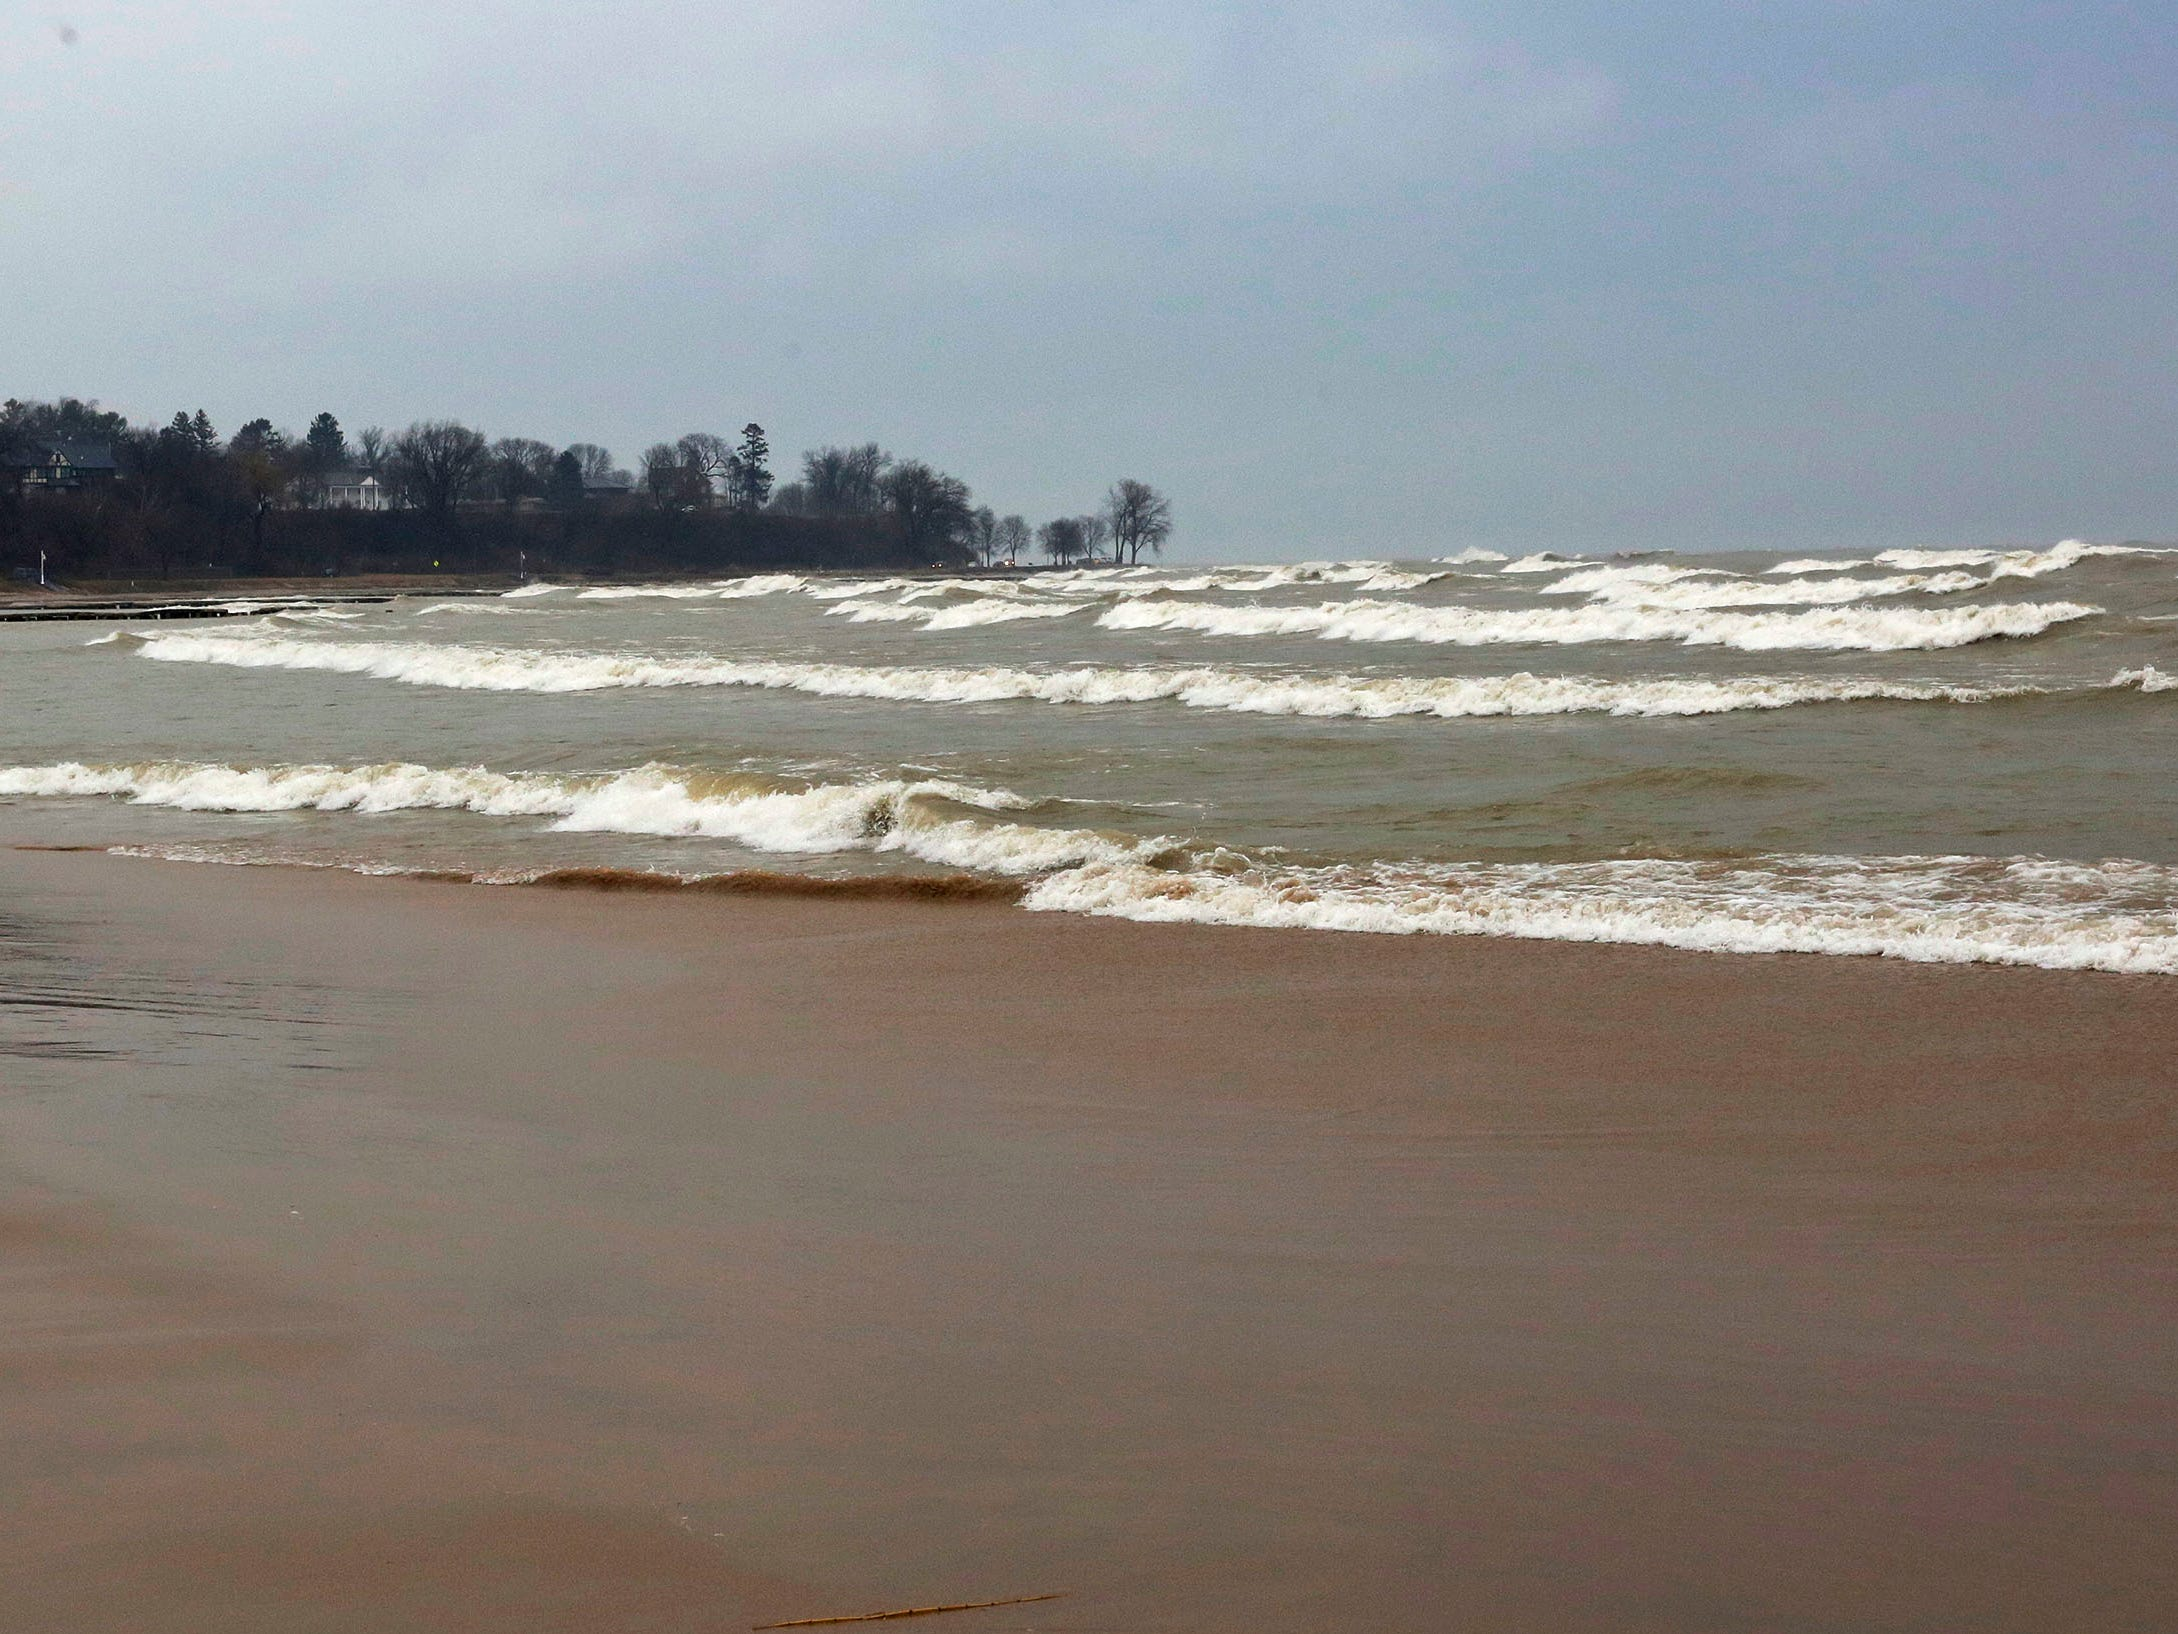 Waves arrive at Deland Park, Monday, January 7, 2019, in Sheboygan, Wis. Westerly winds of 15-25 knots were expected to be in the 3 to 8 foot range with possibilities as high as 10 feet.